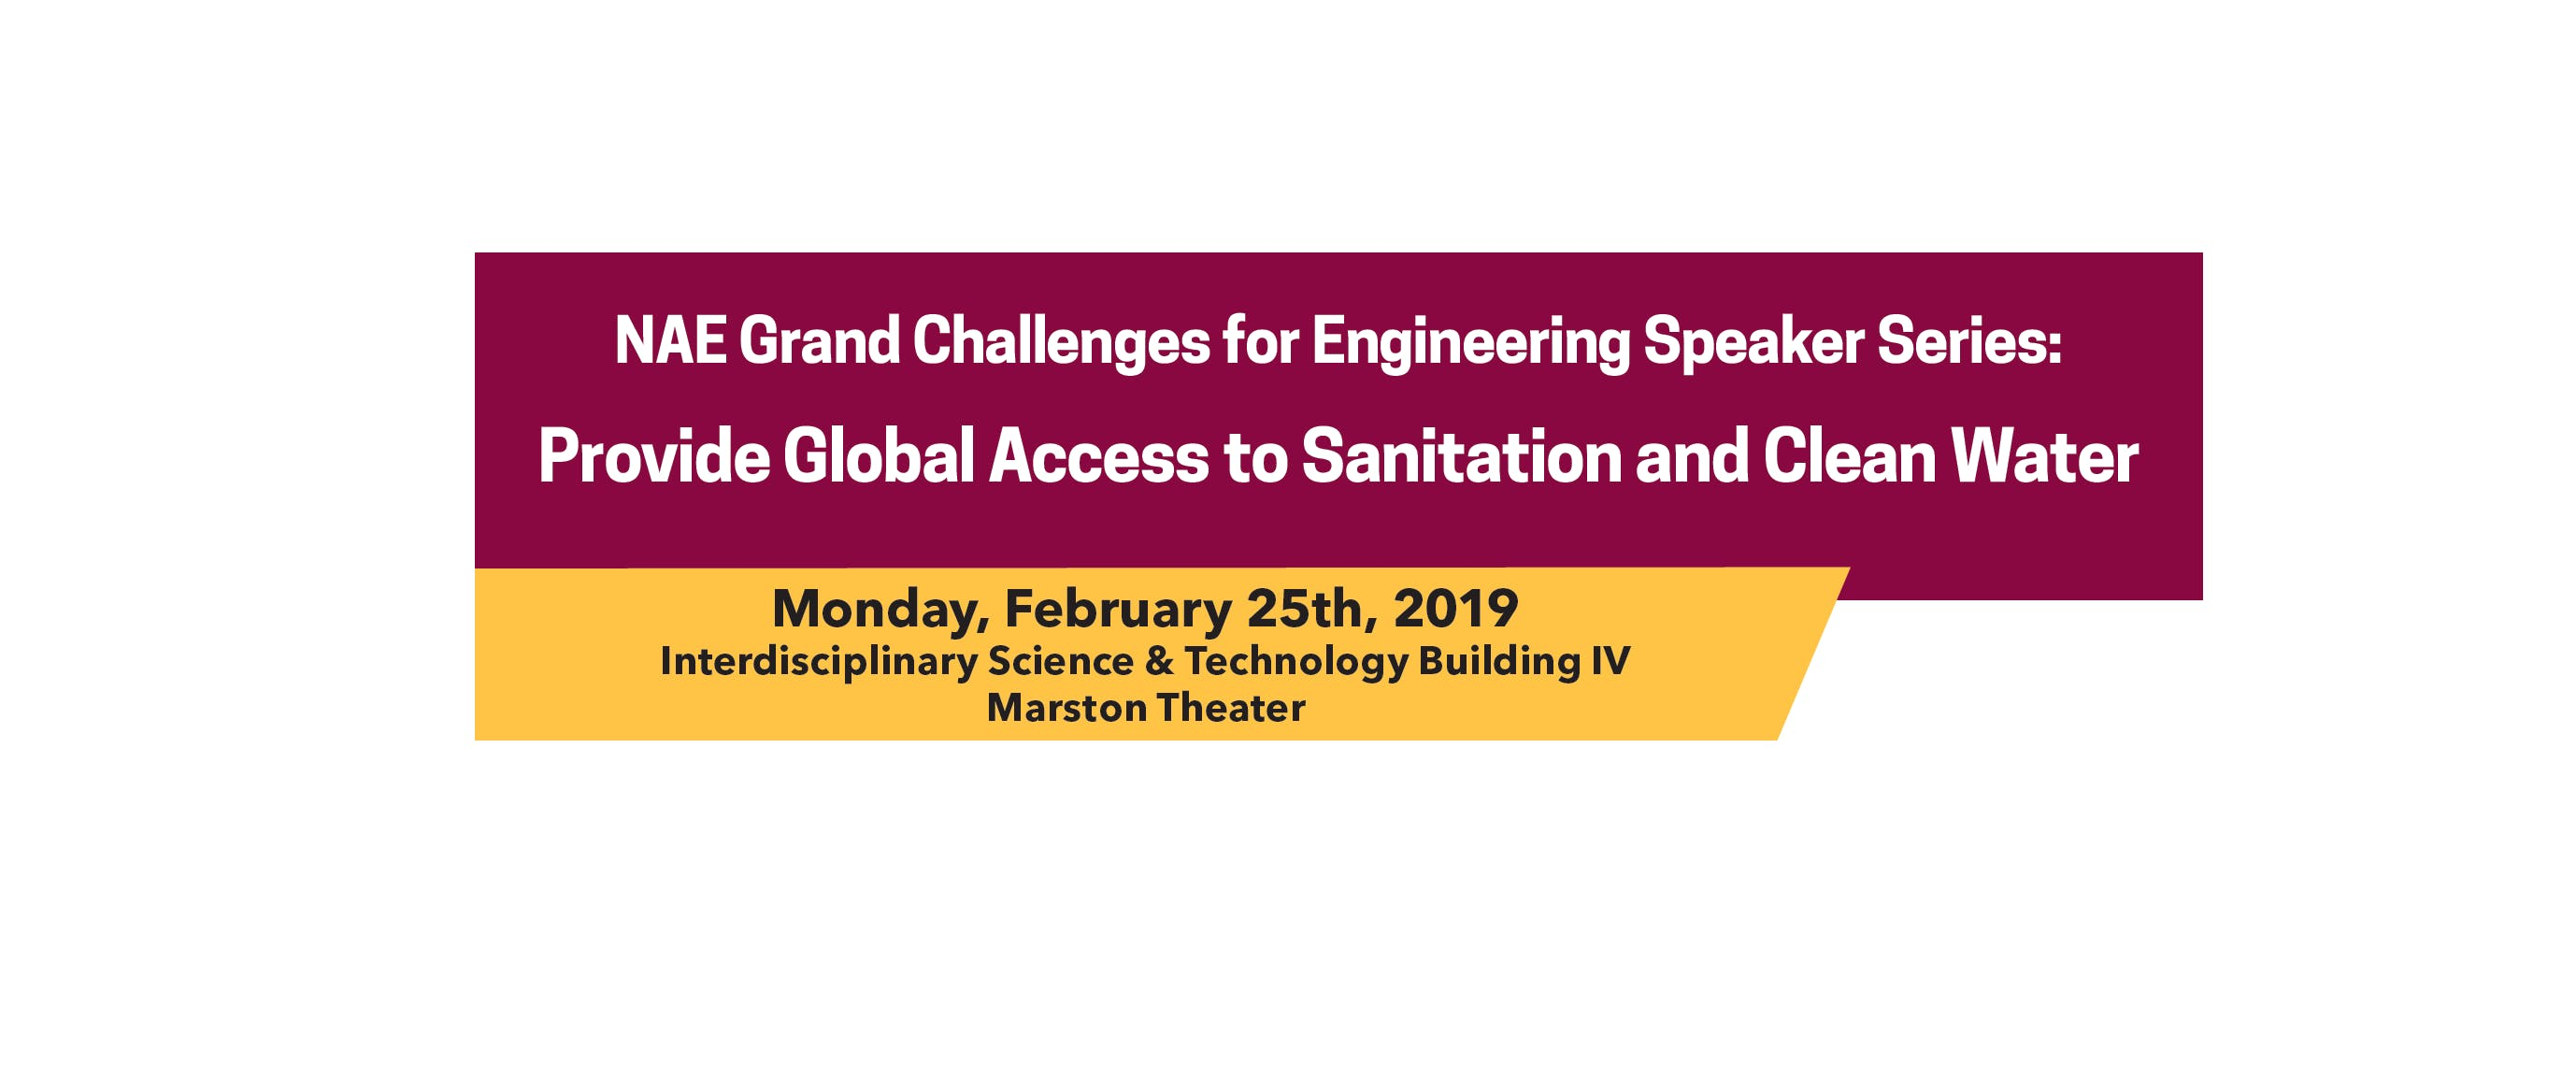 NAE Grand Challenges for Engineering Speaker Series: Provide Global Access to Sanitation and Clean Water